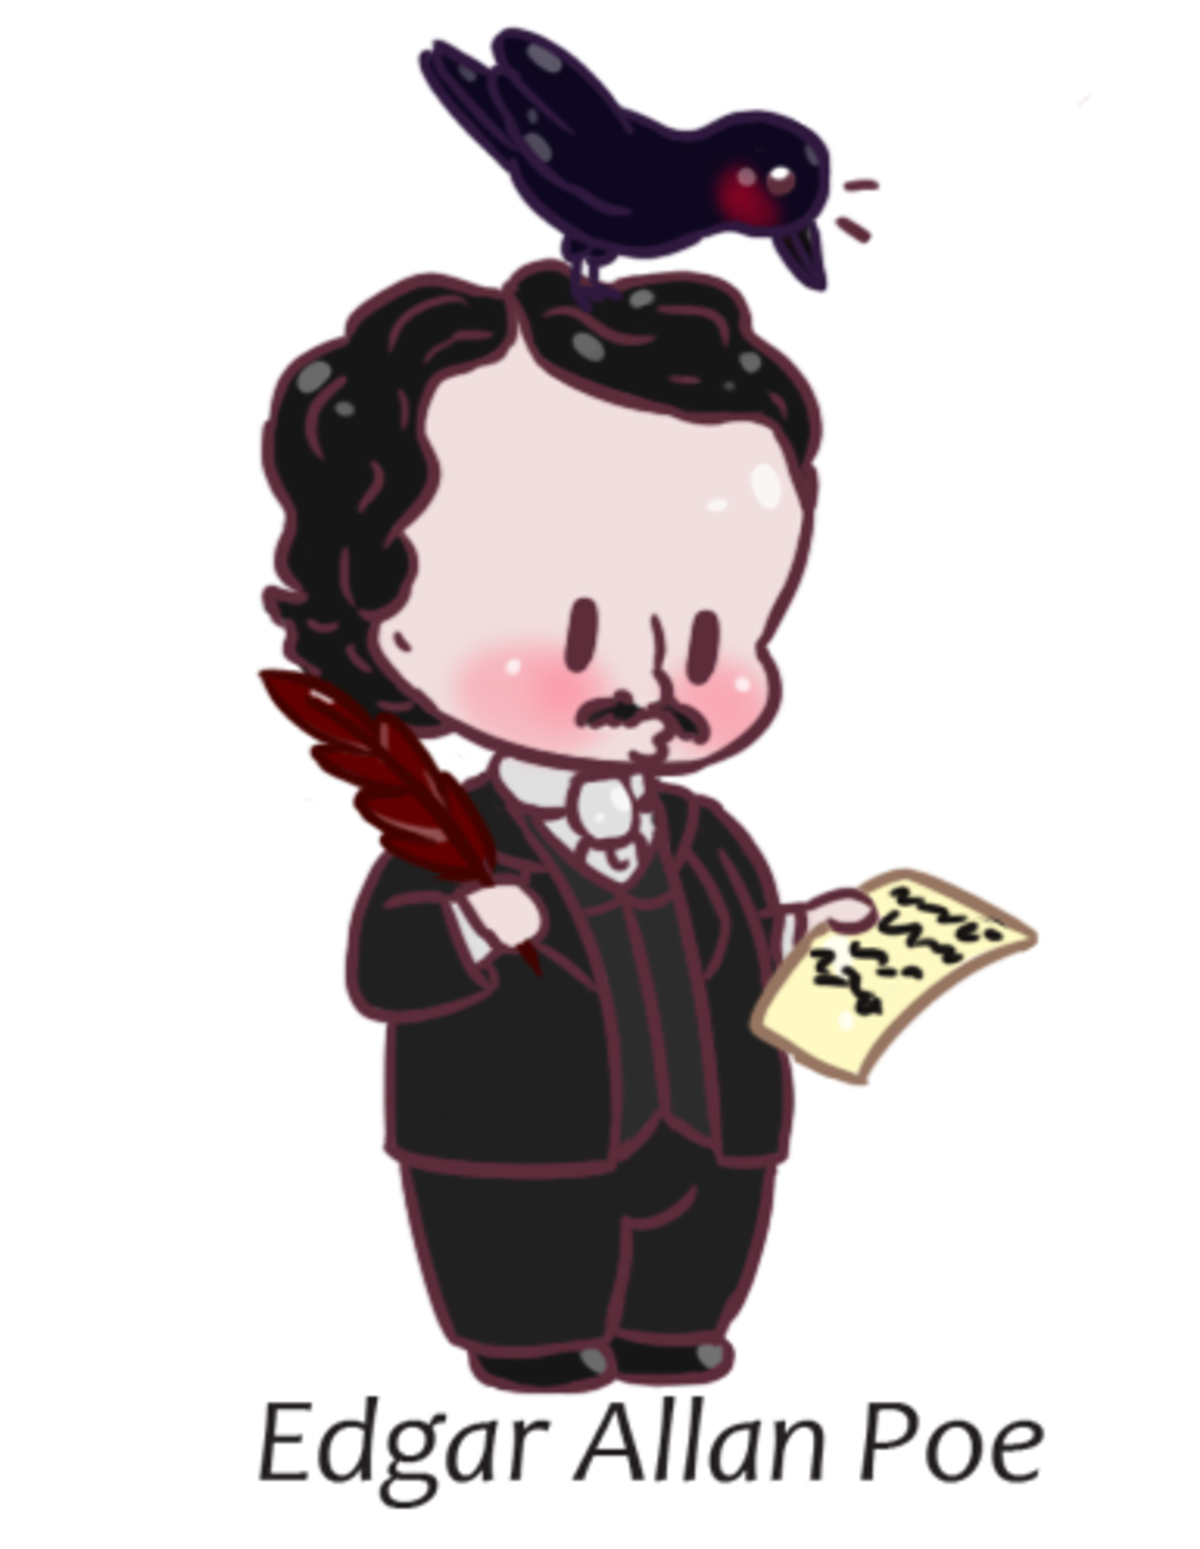 chibi Edgar Allan Poe. Chibi Edgar Allan Poe writing the chibi Raven. Chibi History #3 I am still taking suggestions for any chibi series The first and foremost